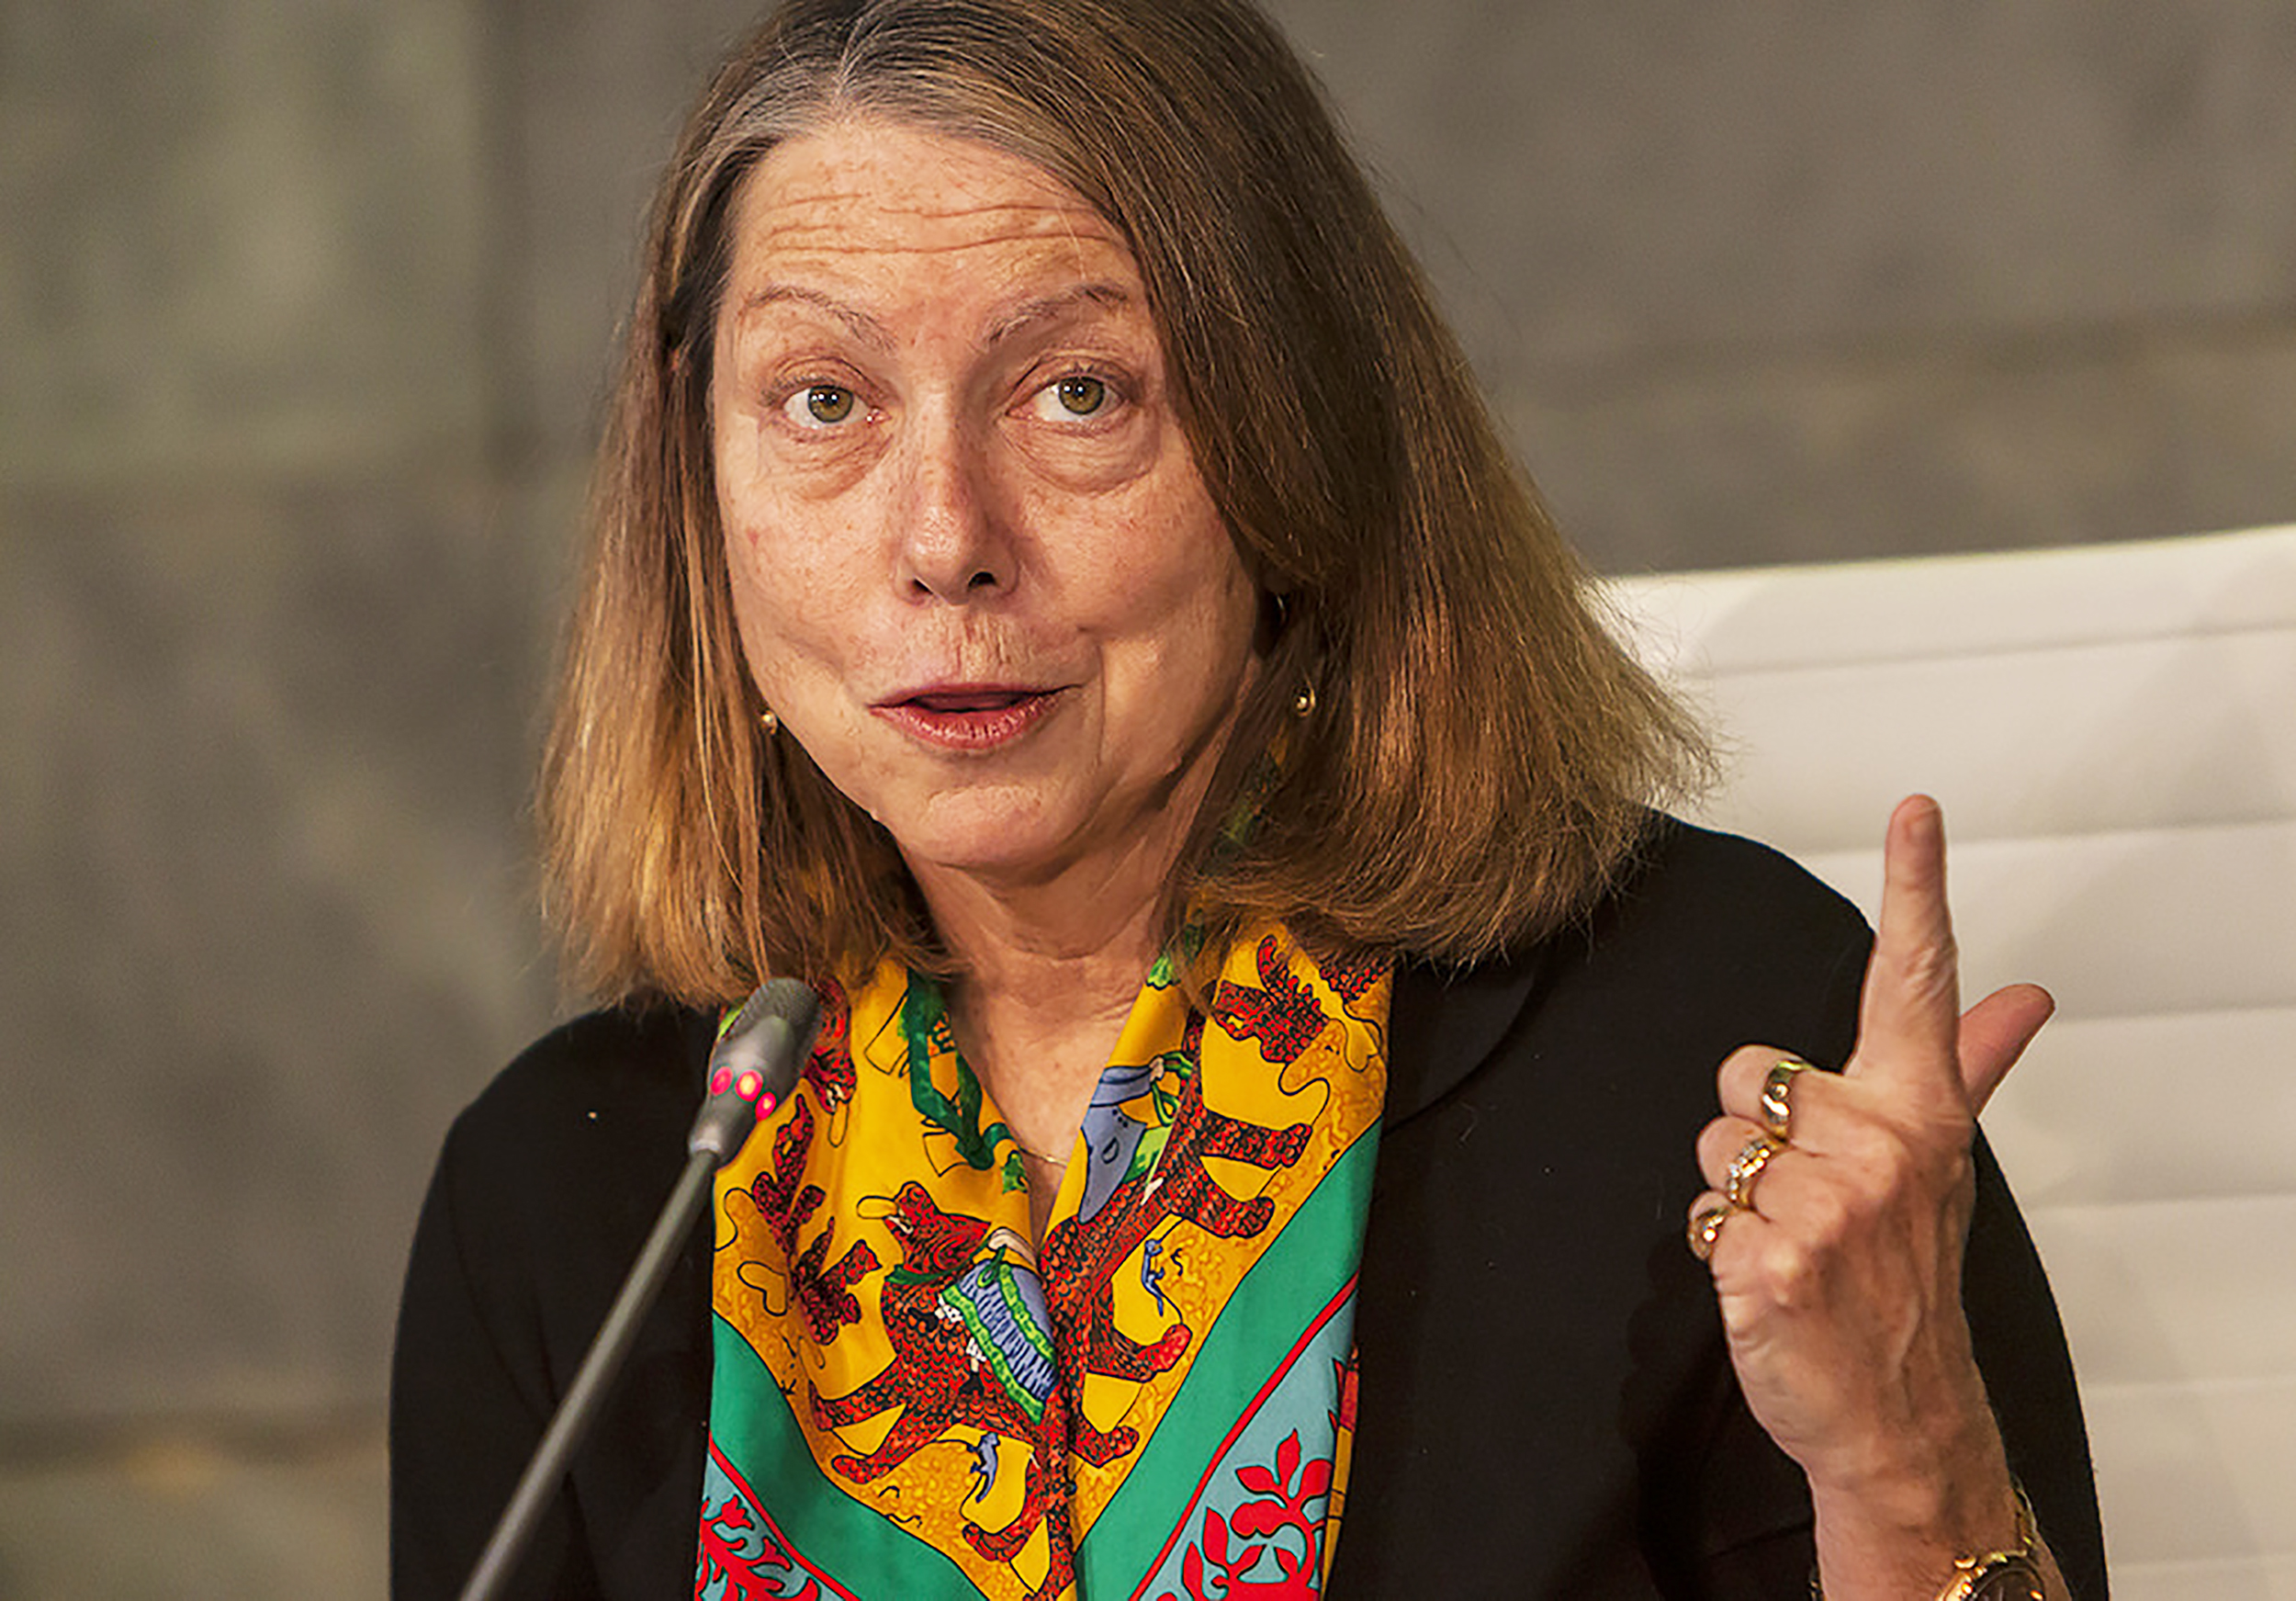 Former New York Times executive editor Jill Abramson (pictured above) published a book on Feb. 5, which turned out to be factually and ethically flawed. Instead of being sheltered by the media due to her journalism experience, she must be held publicly accountable (courtesy of Creative Commons).